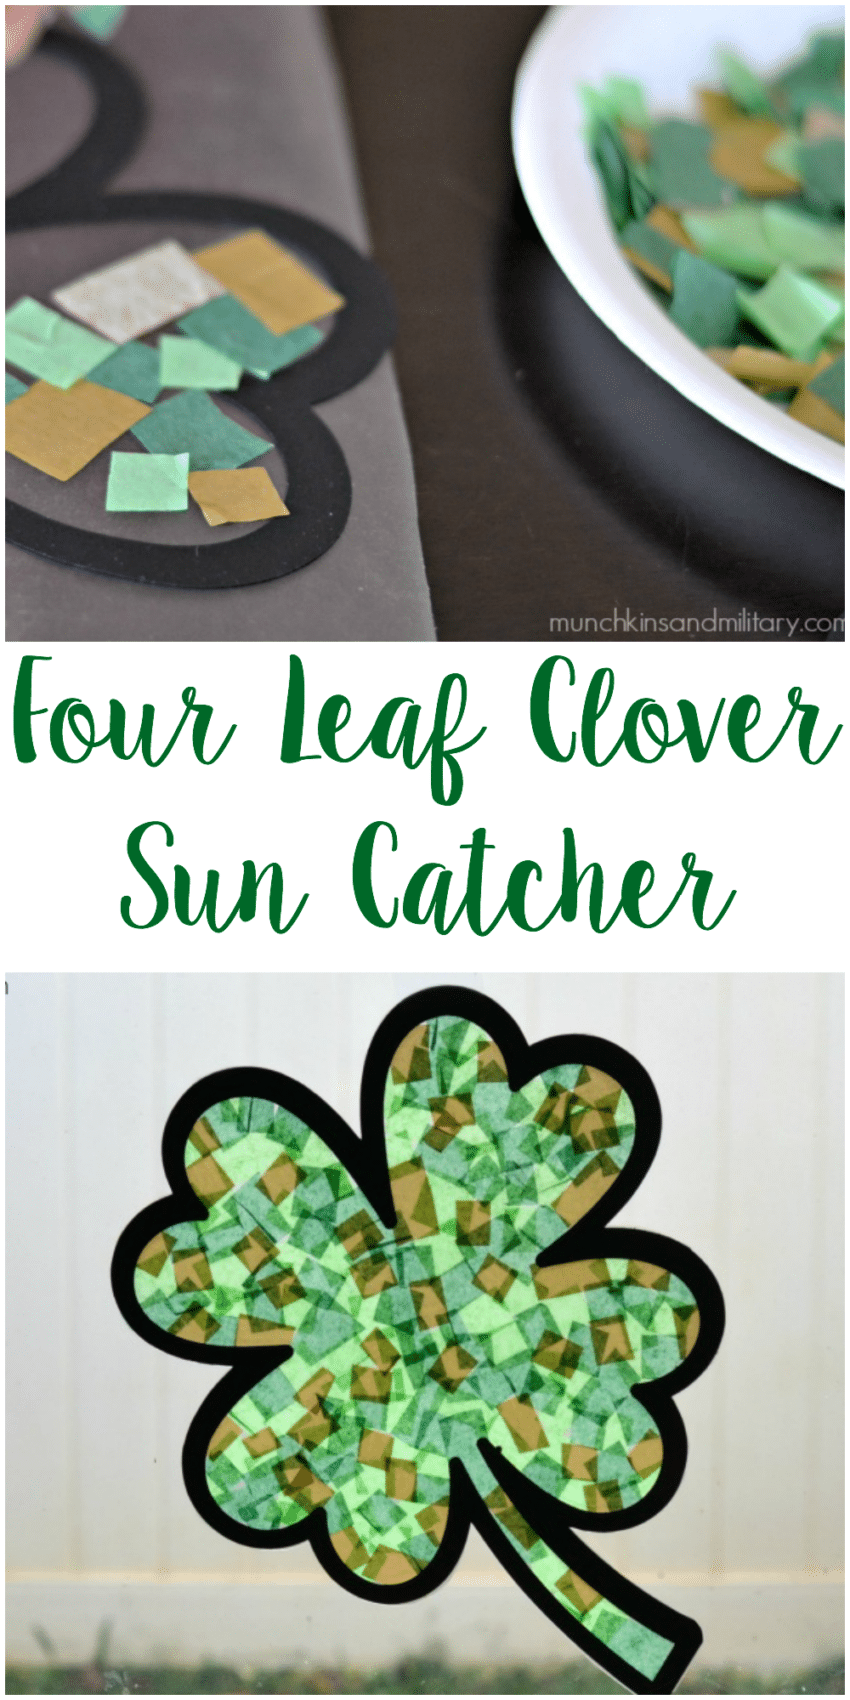 Four Leaf Clover Sun Catcher - Easy St. Patrick's Day craft for kids!